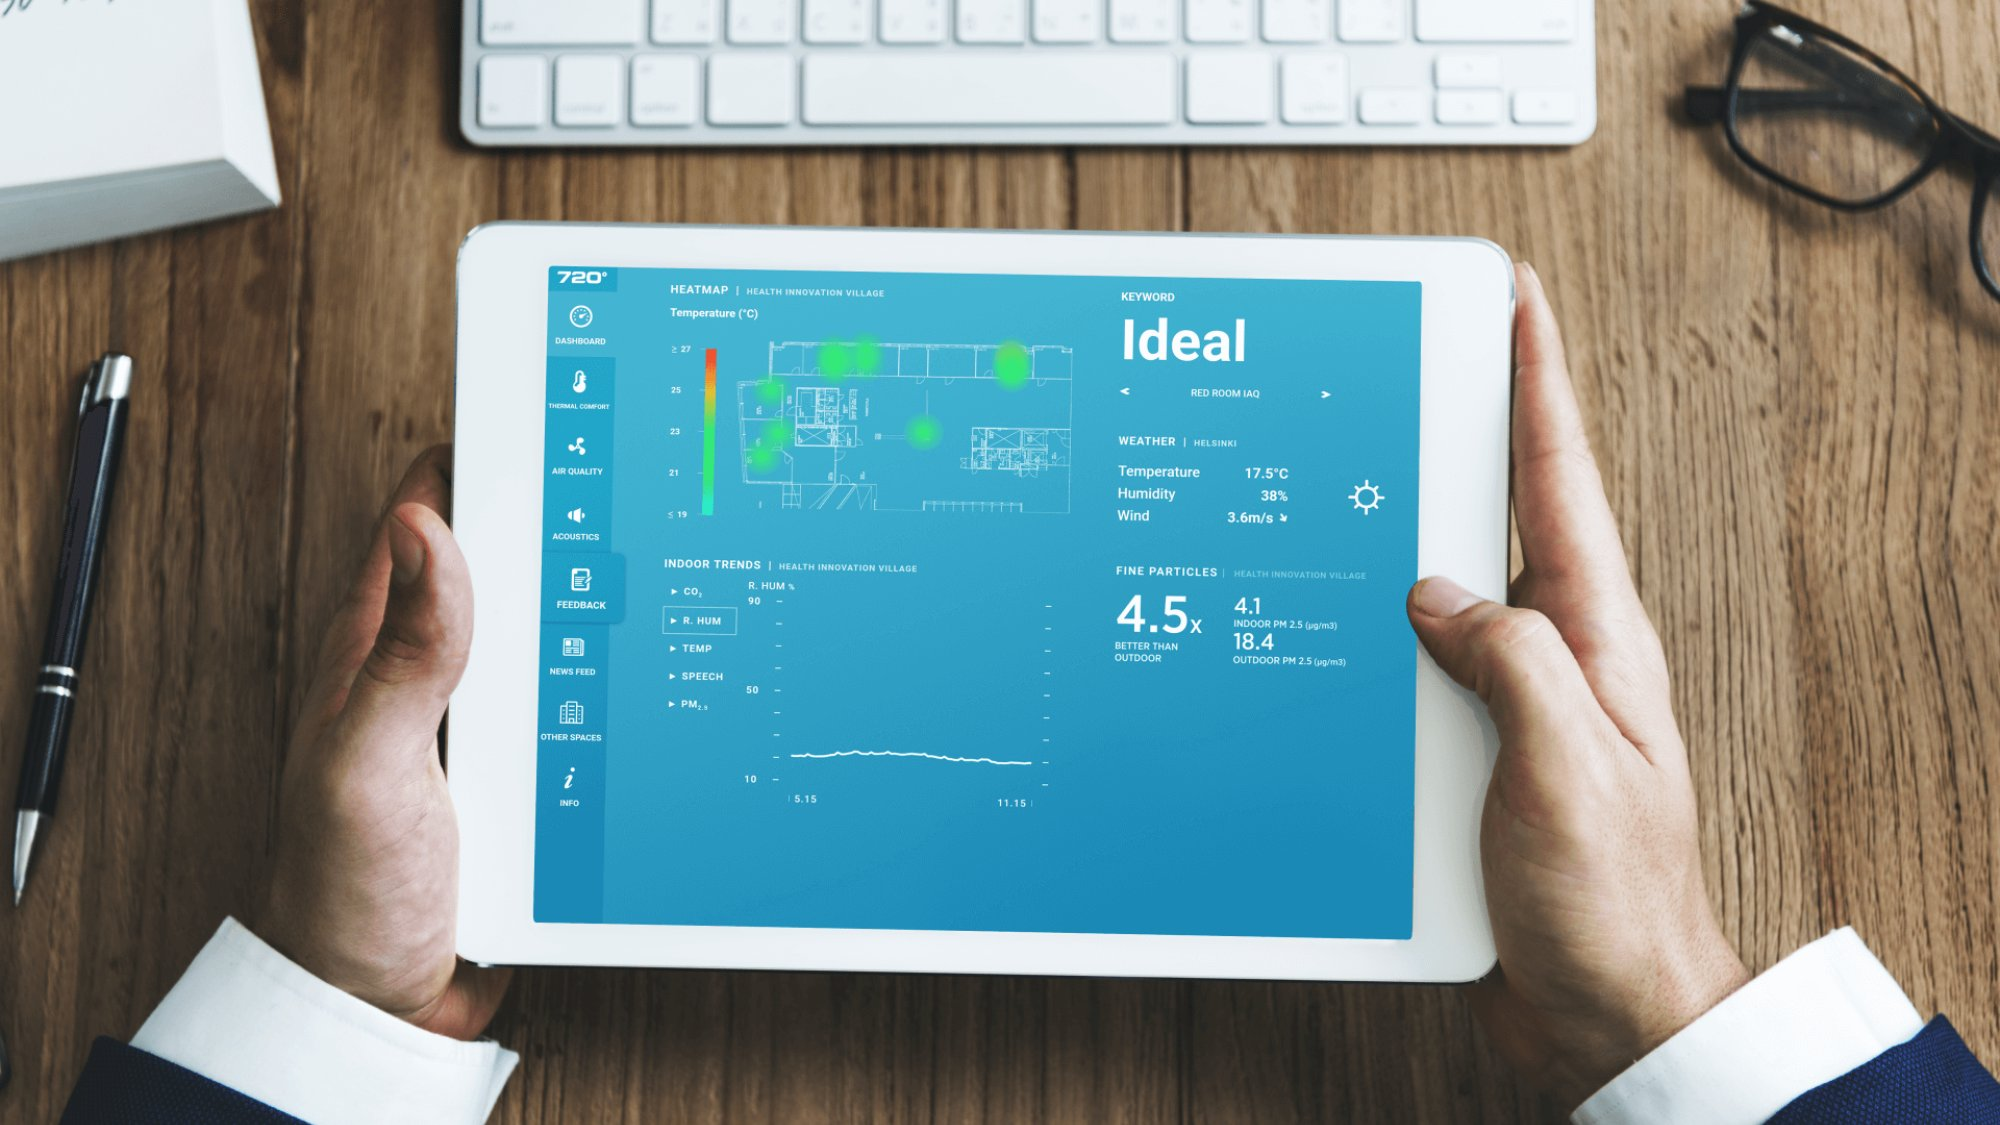 Tablet screen showing AI-powered indoor air quality analytics platform